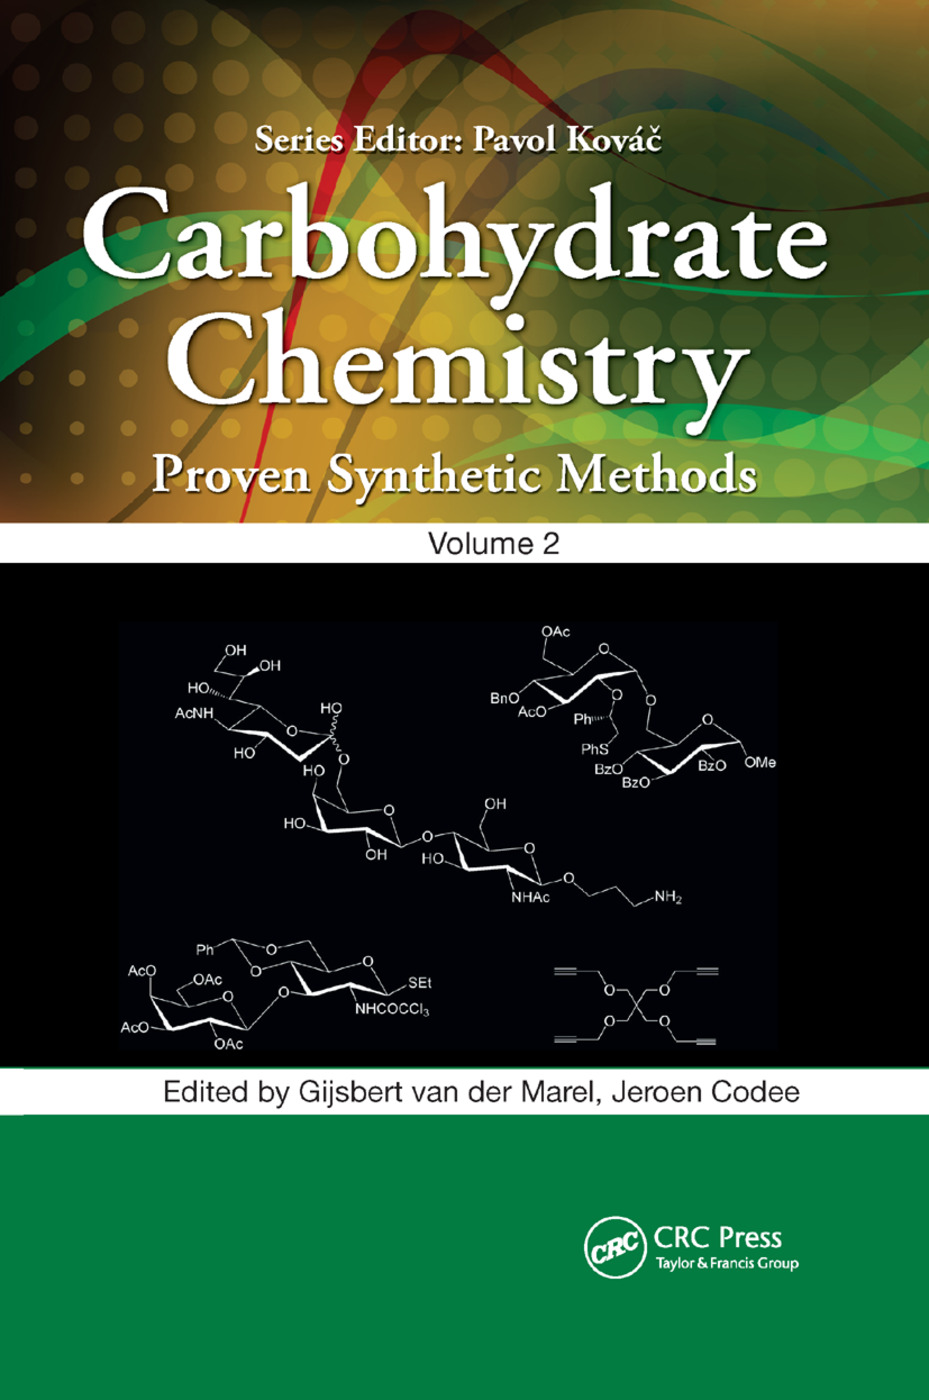 Carbohydrate Chemistry: Proven Synthetic Methods, Volume 2 book cover